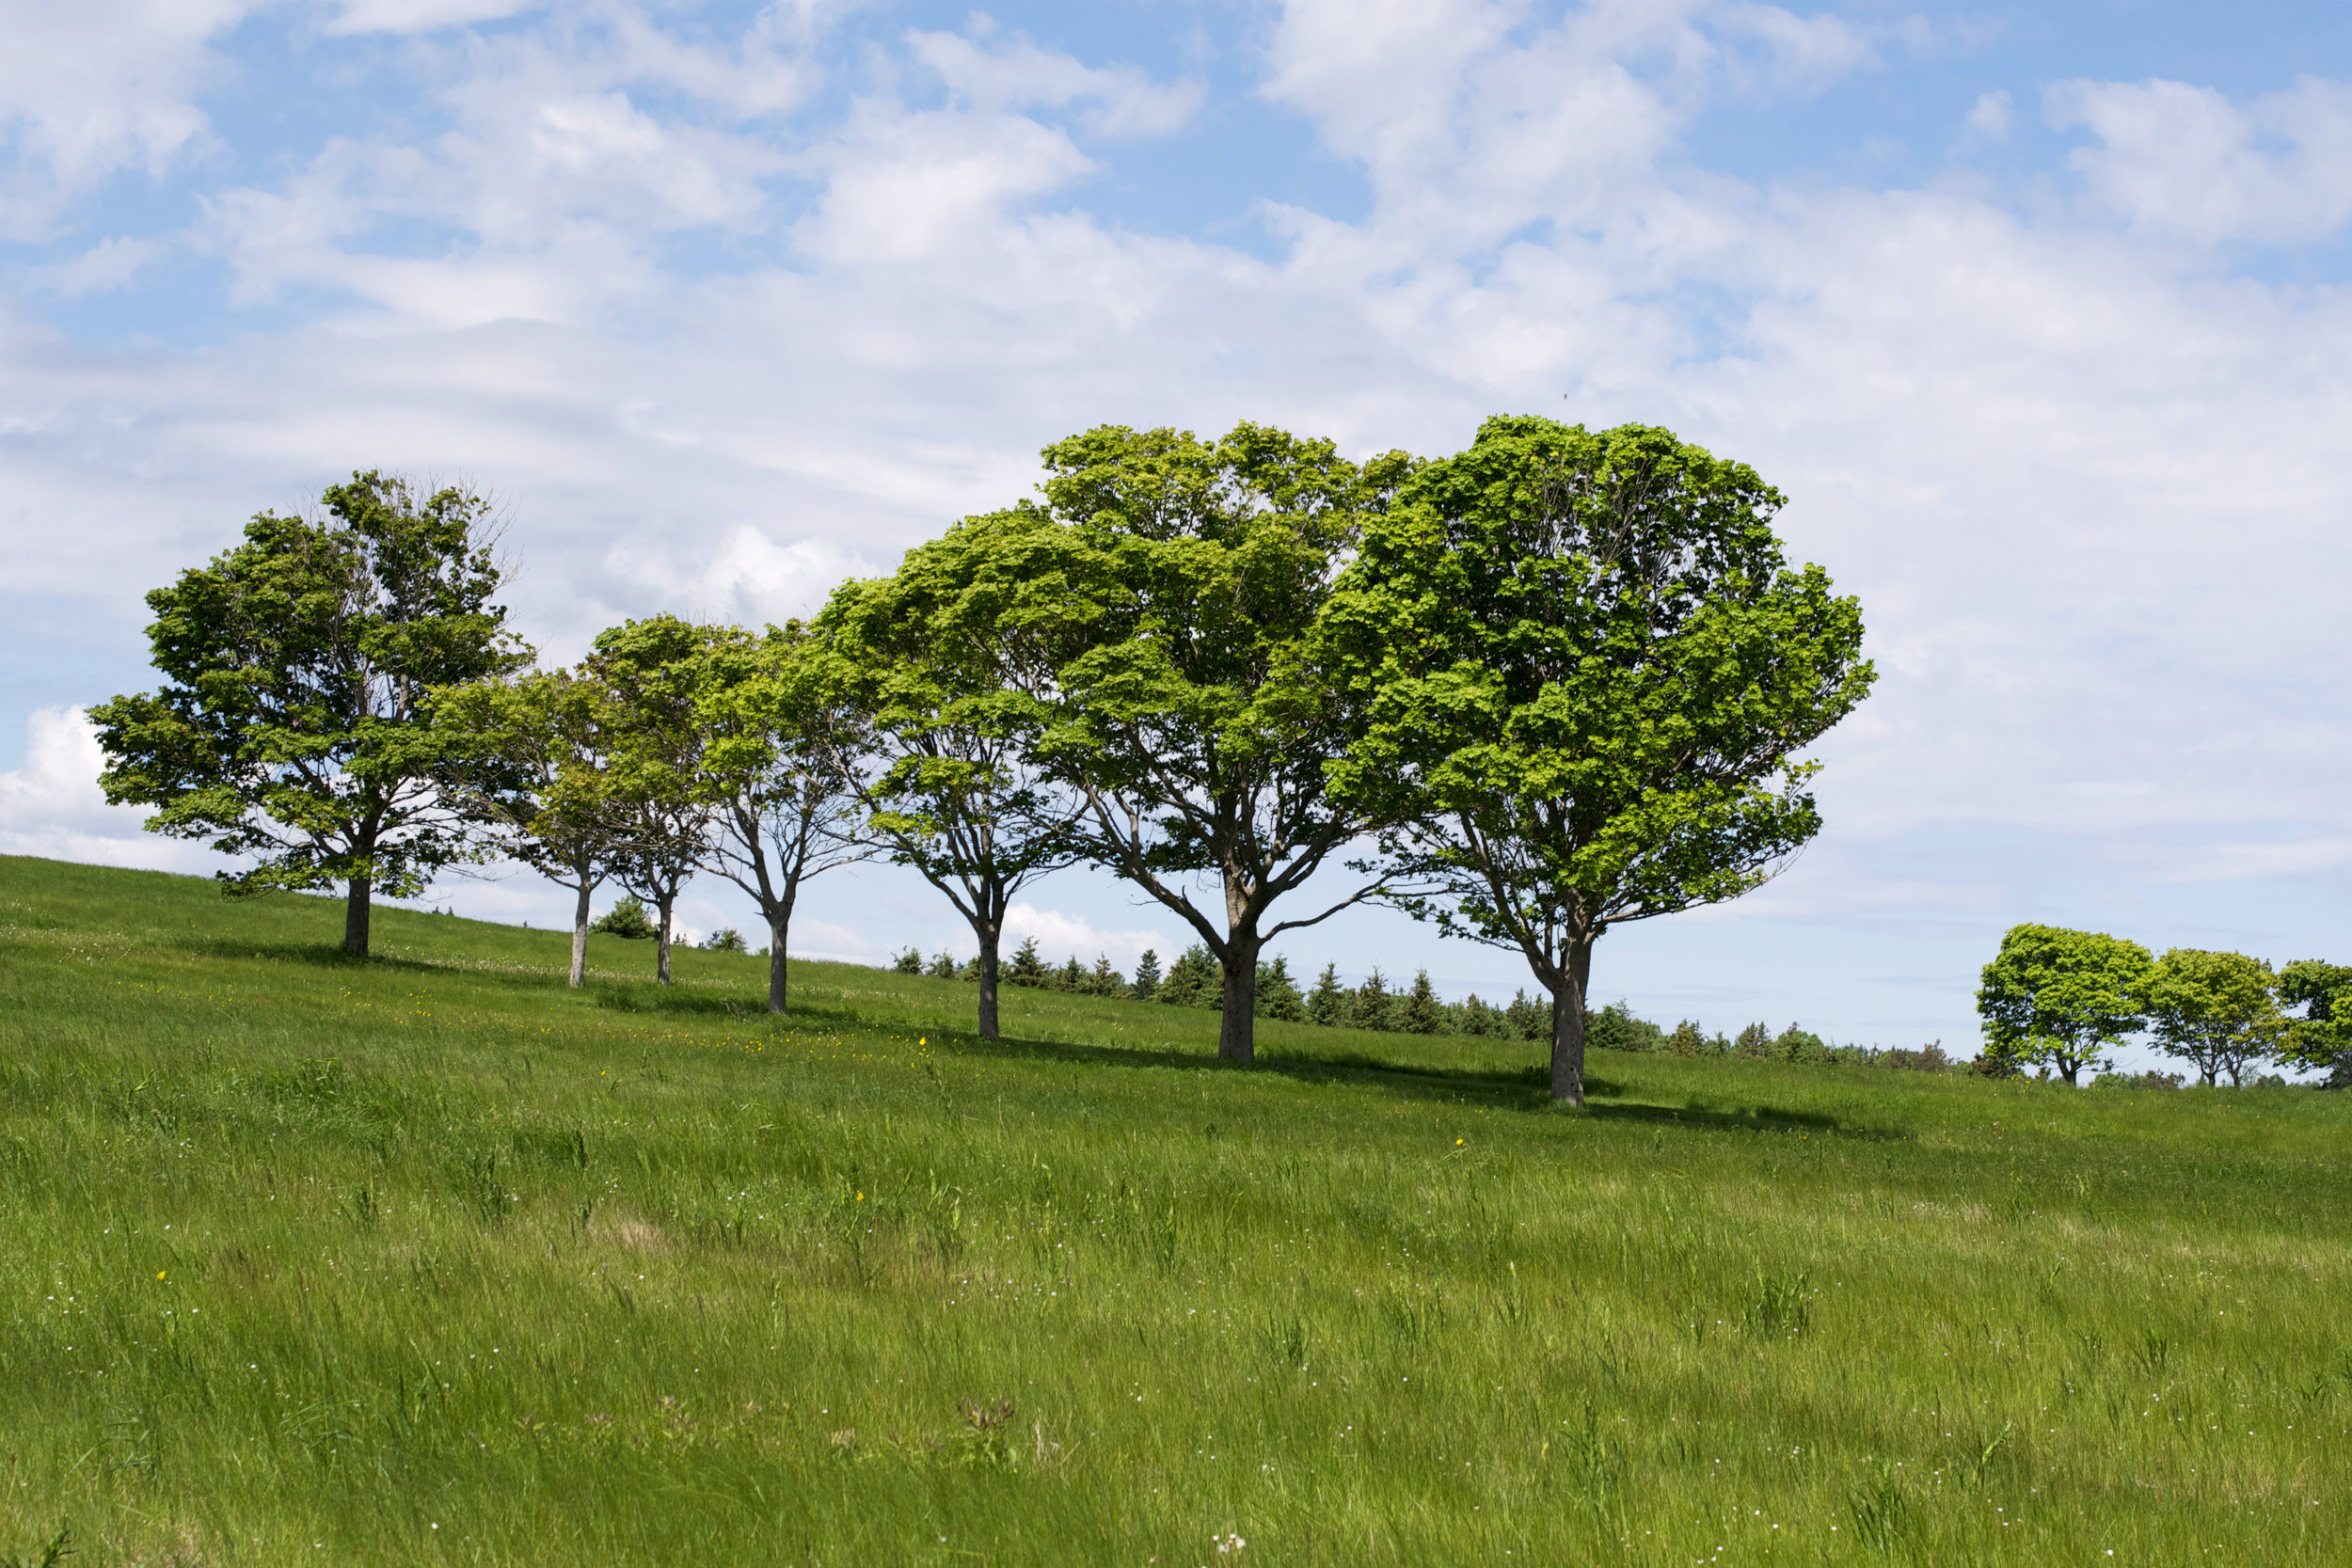 trees-on-a-hill.jpg